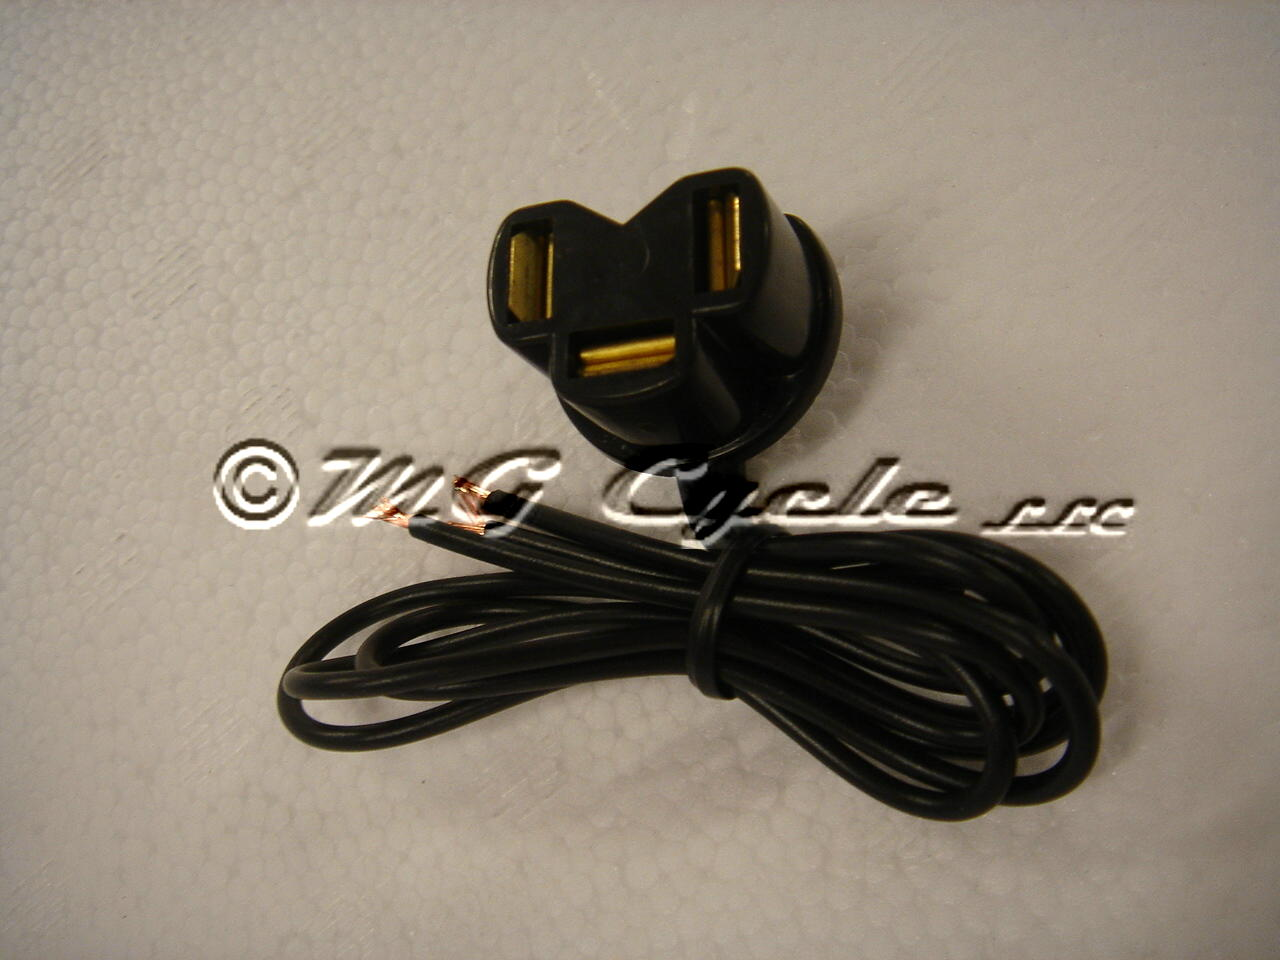 3 wire headlight plug socket with pigtail